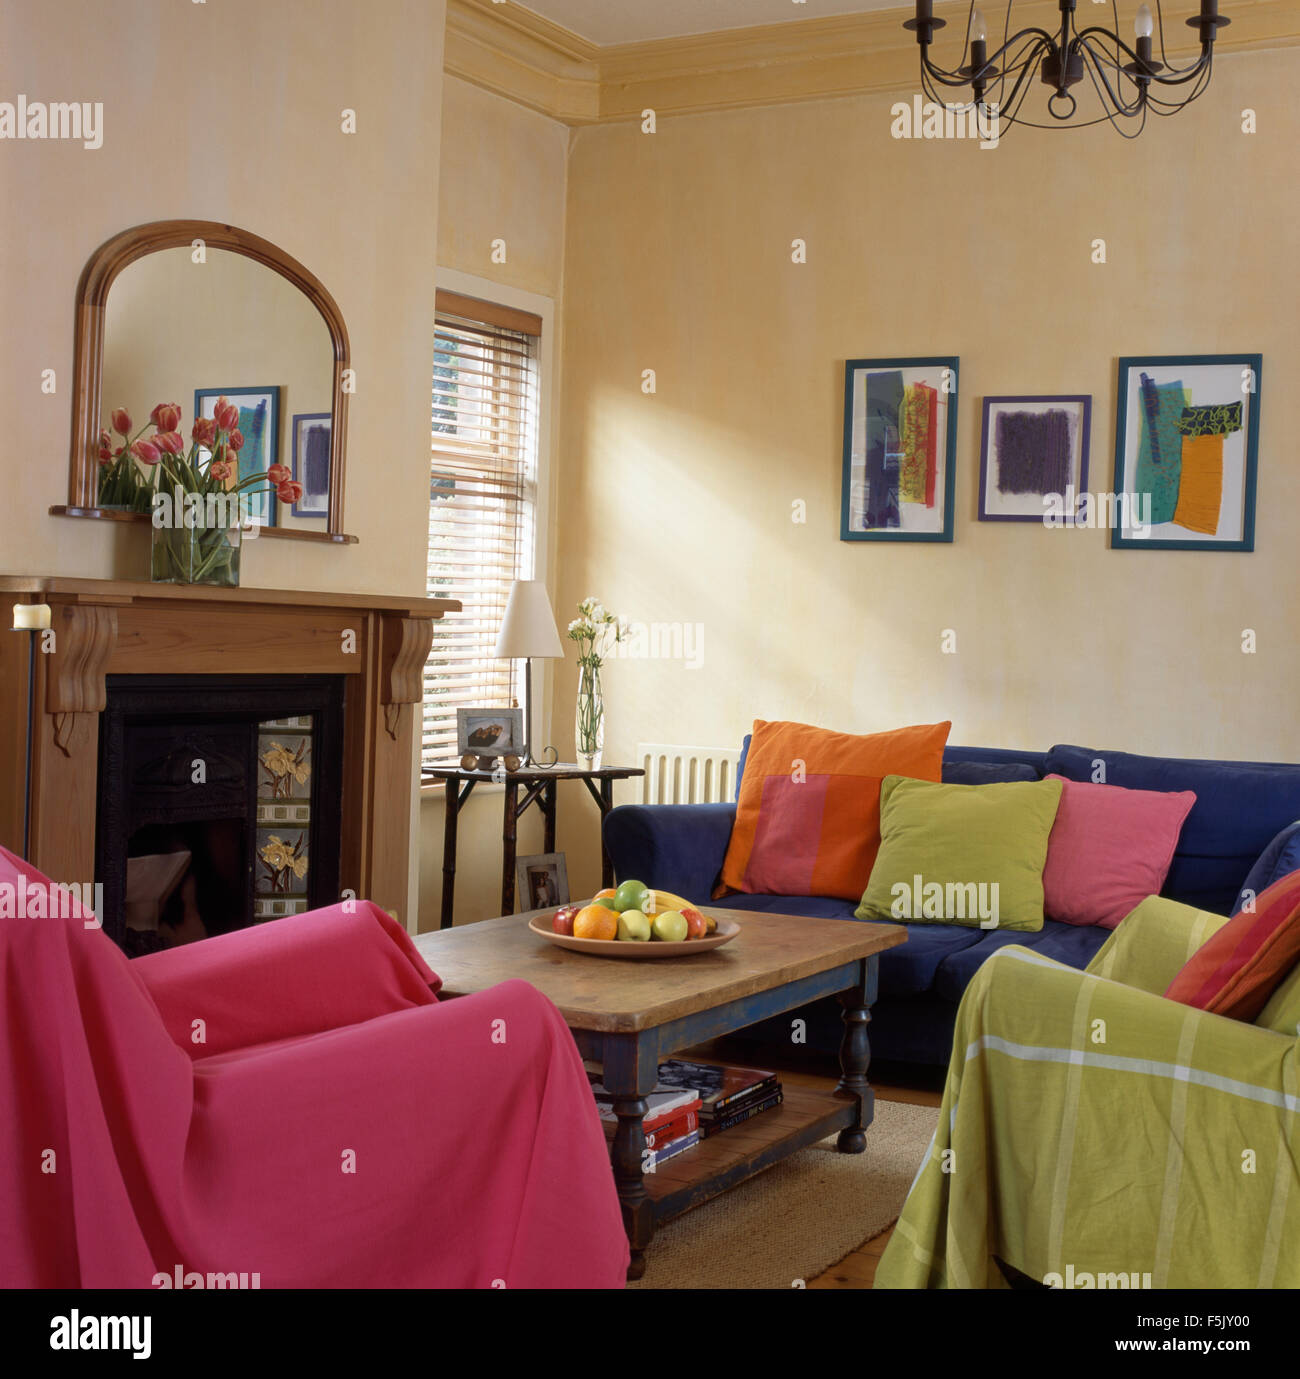 Pink cushions sofa room stock photos pink cushions sofa room stock images alamy for Red and lime green living room